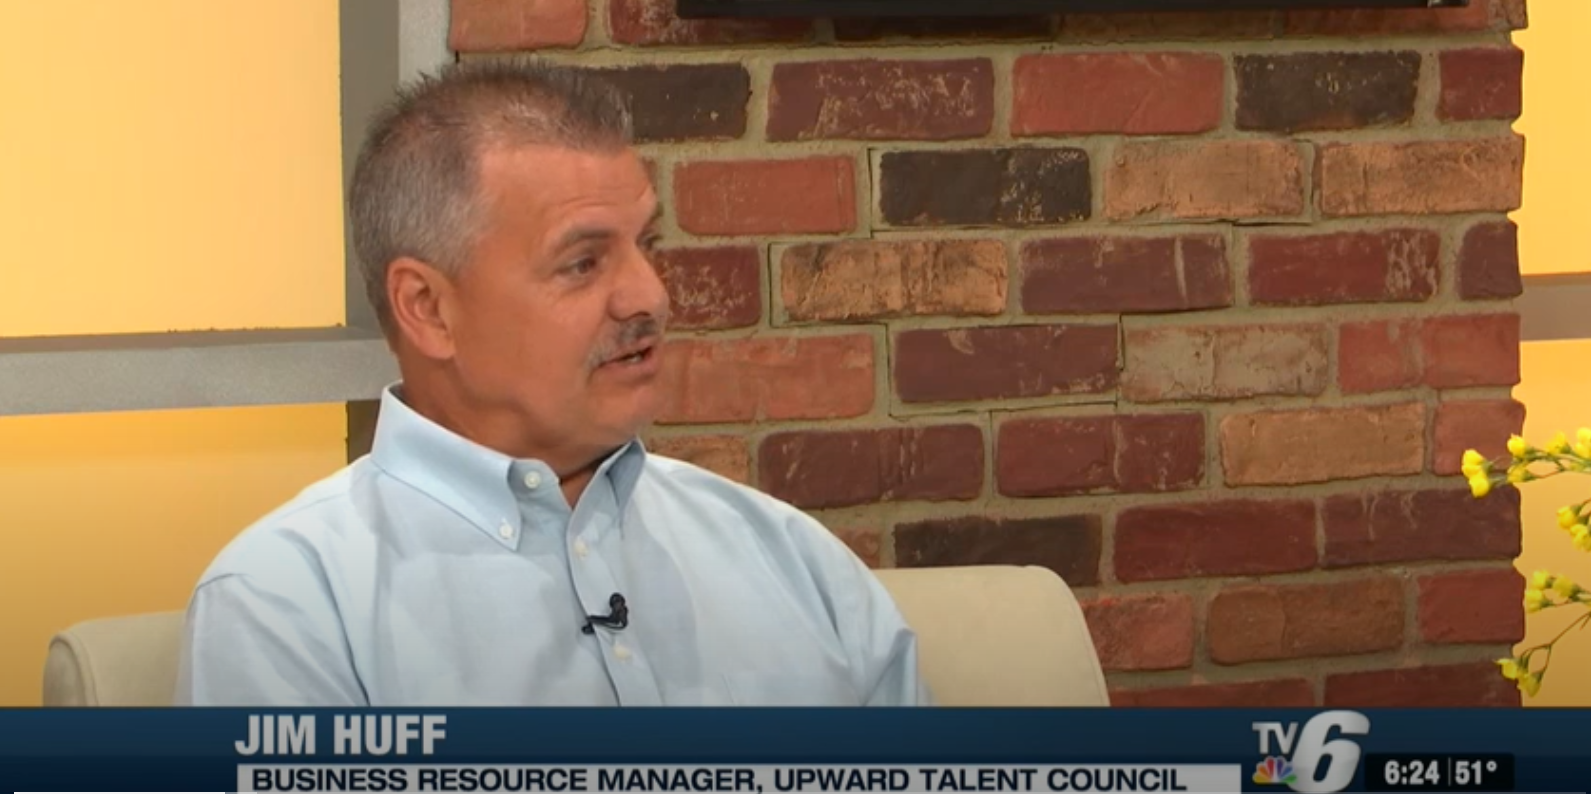 Jim Huff, BRN Manager being interviewed on TV6. Closeup.